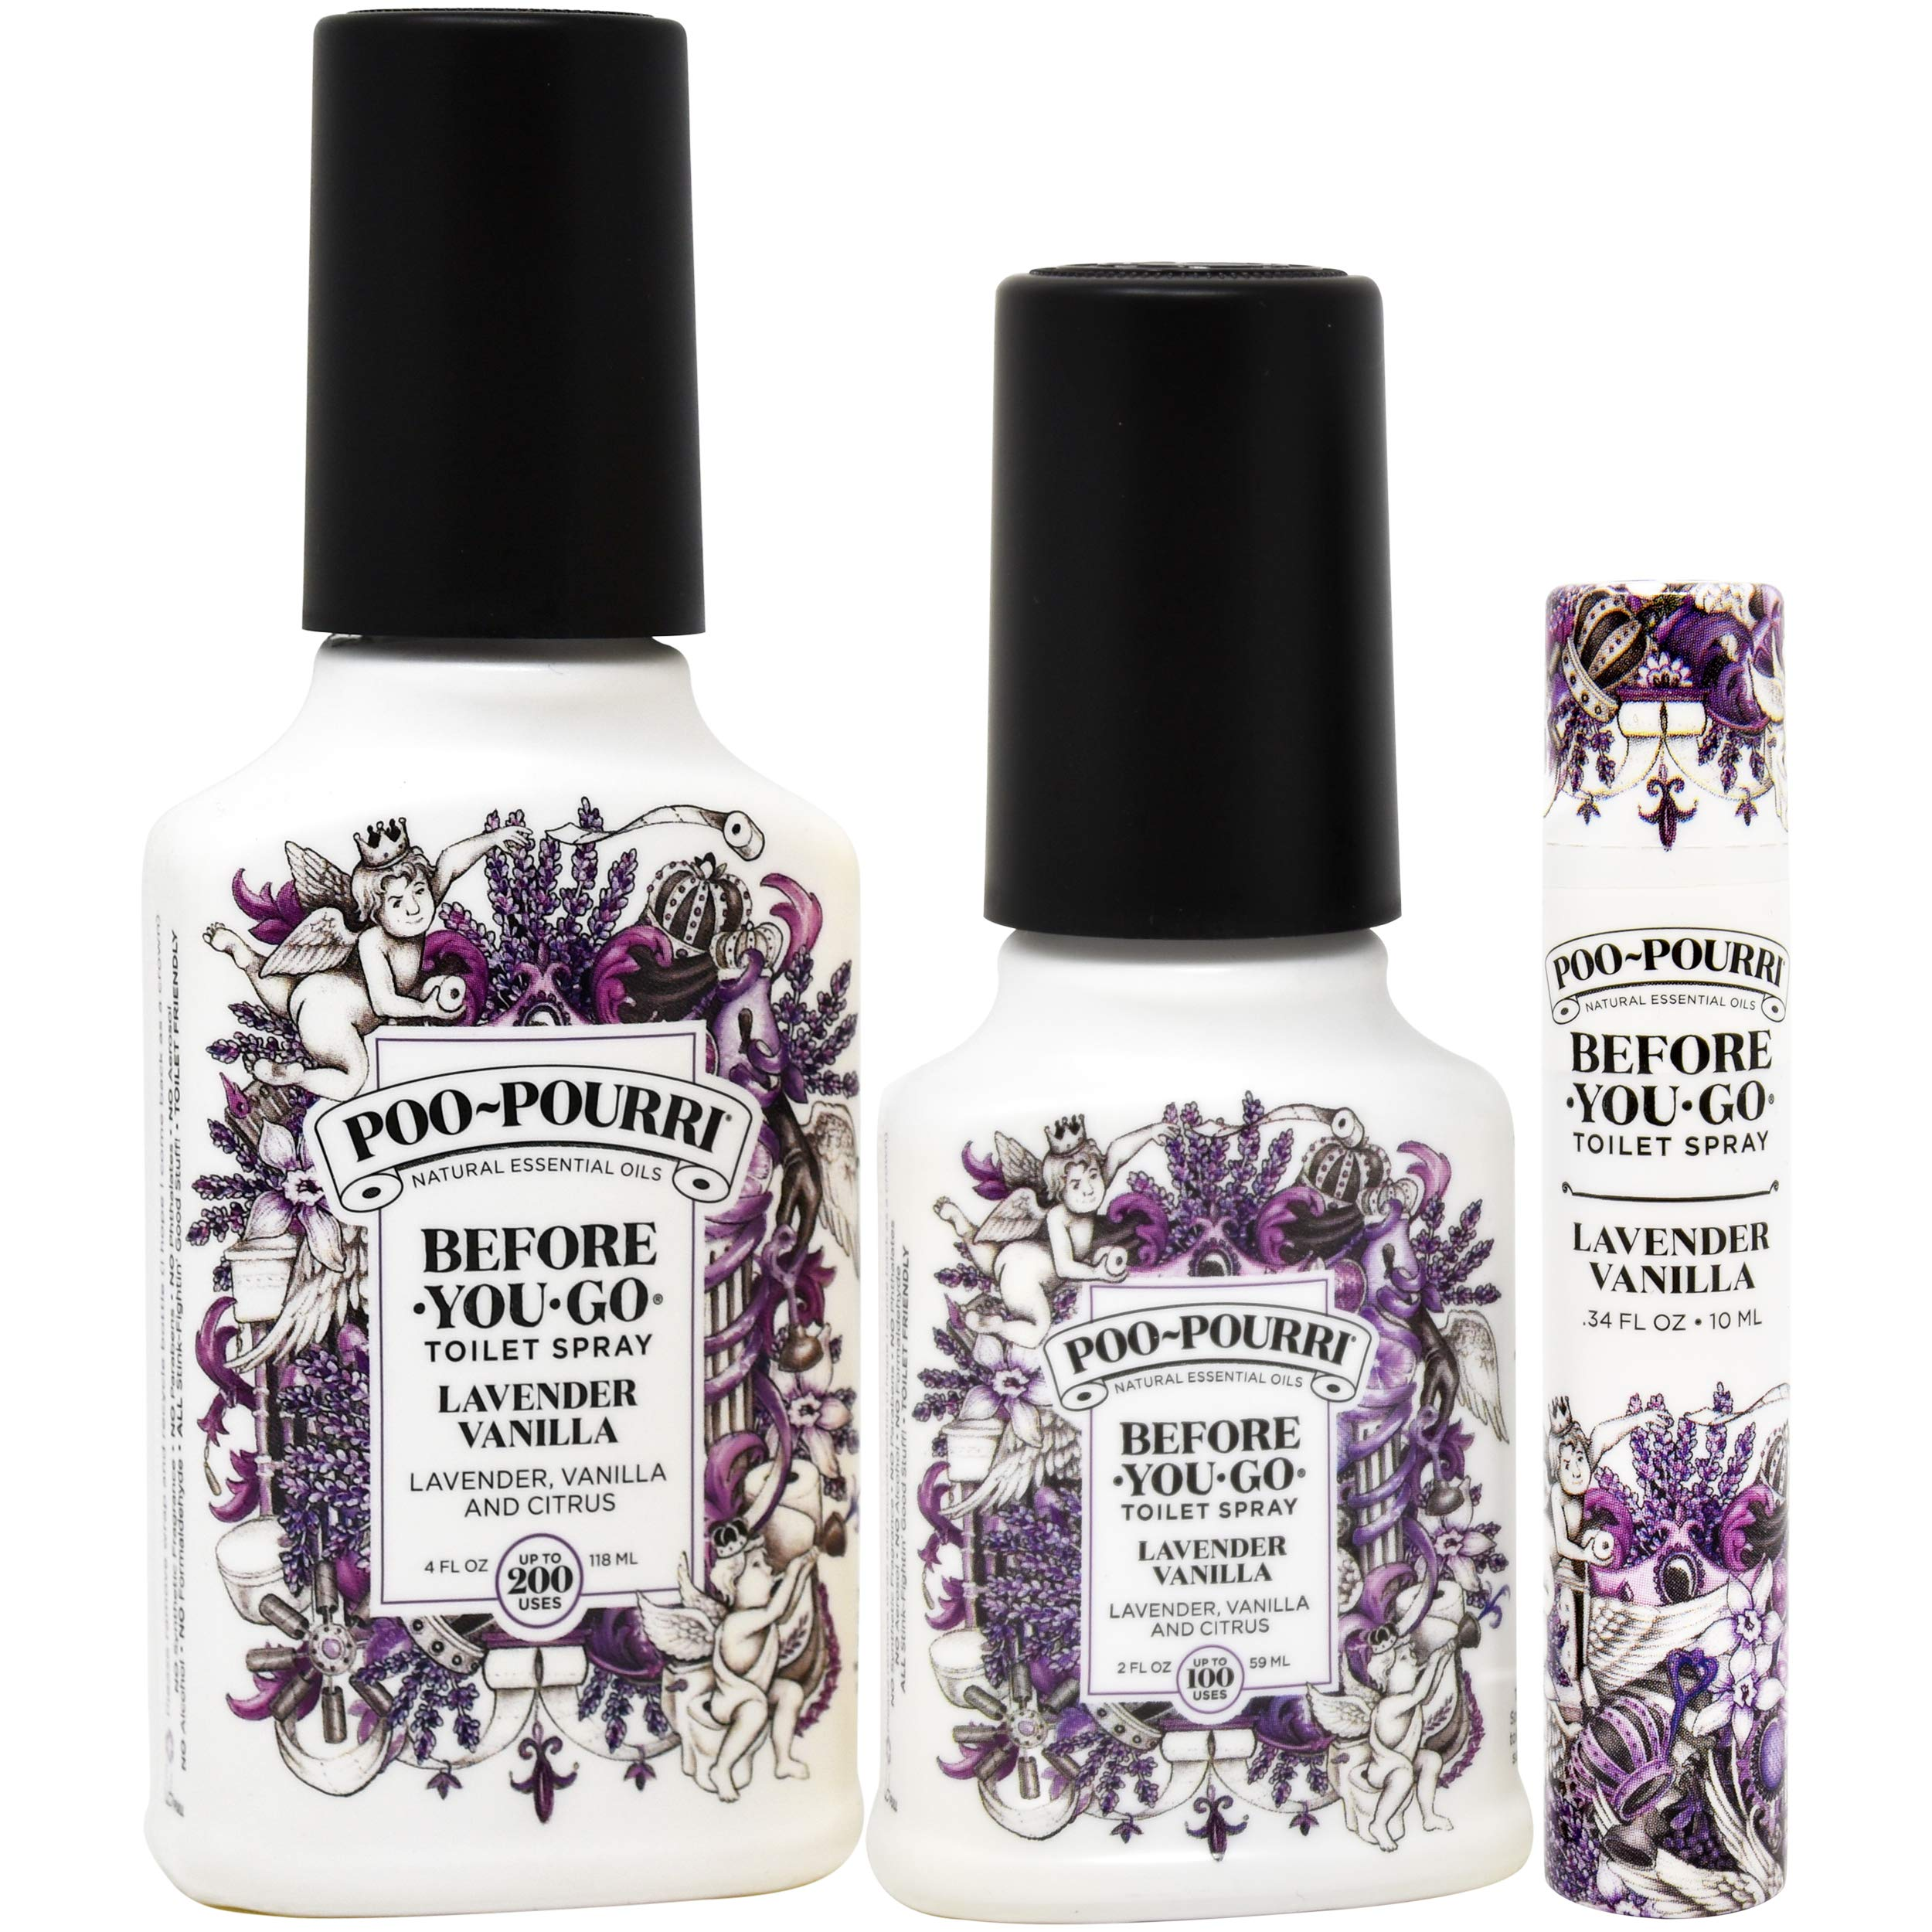 Poo-Pourri Lavender Vanilla 2 Ounce, 4 Ounce, Travel Size Spritzer, and Box by Poo-Pourri